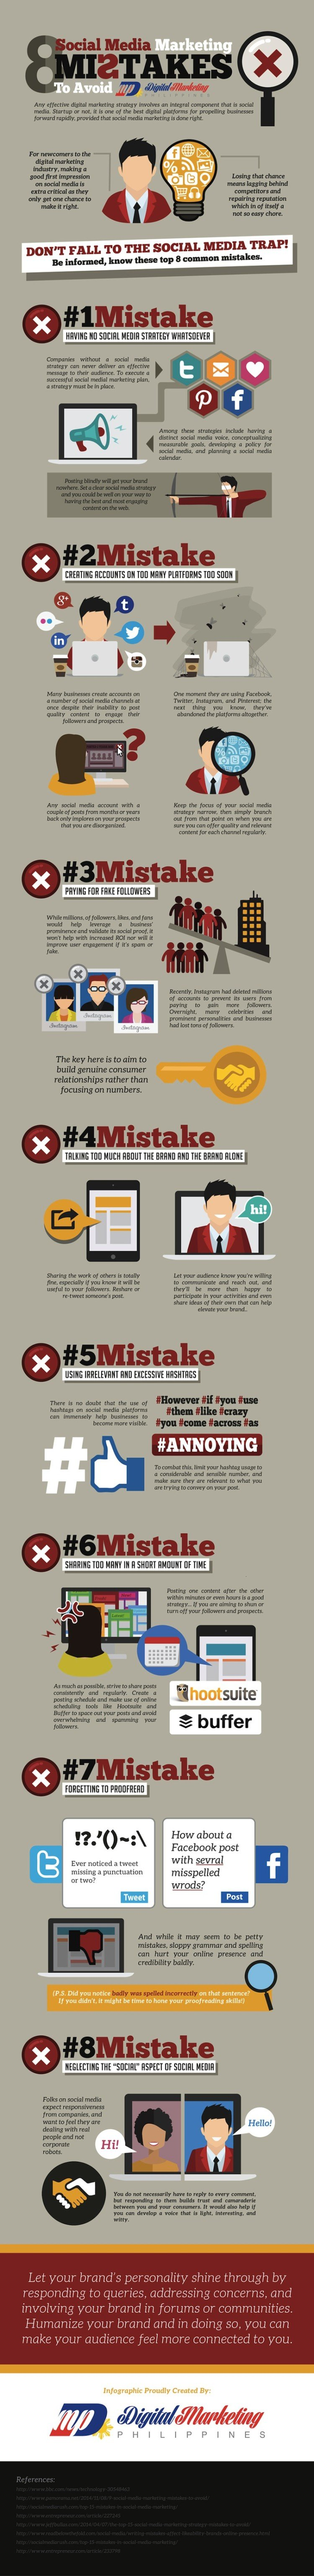 8 Social Media Mistakes to Avoid [Infographic]